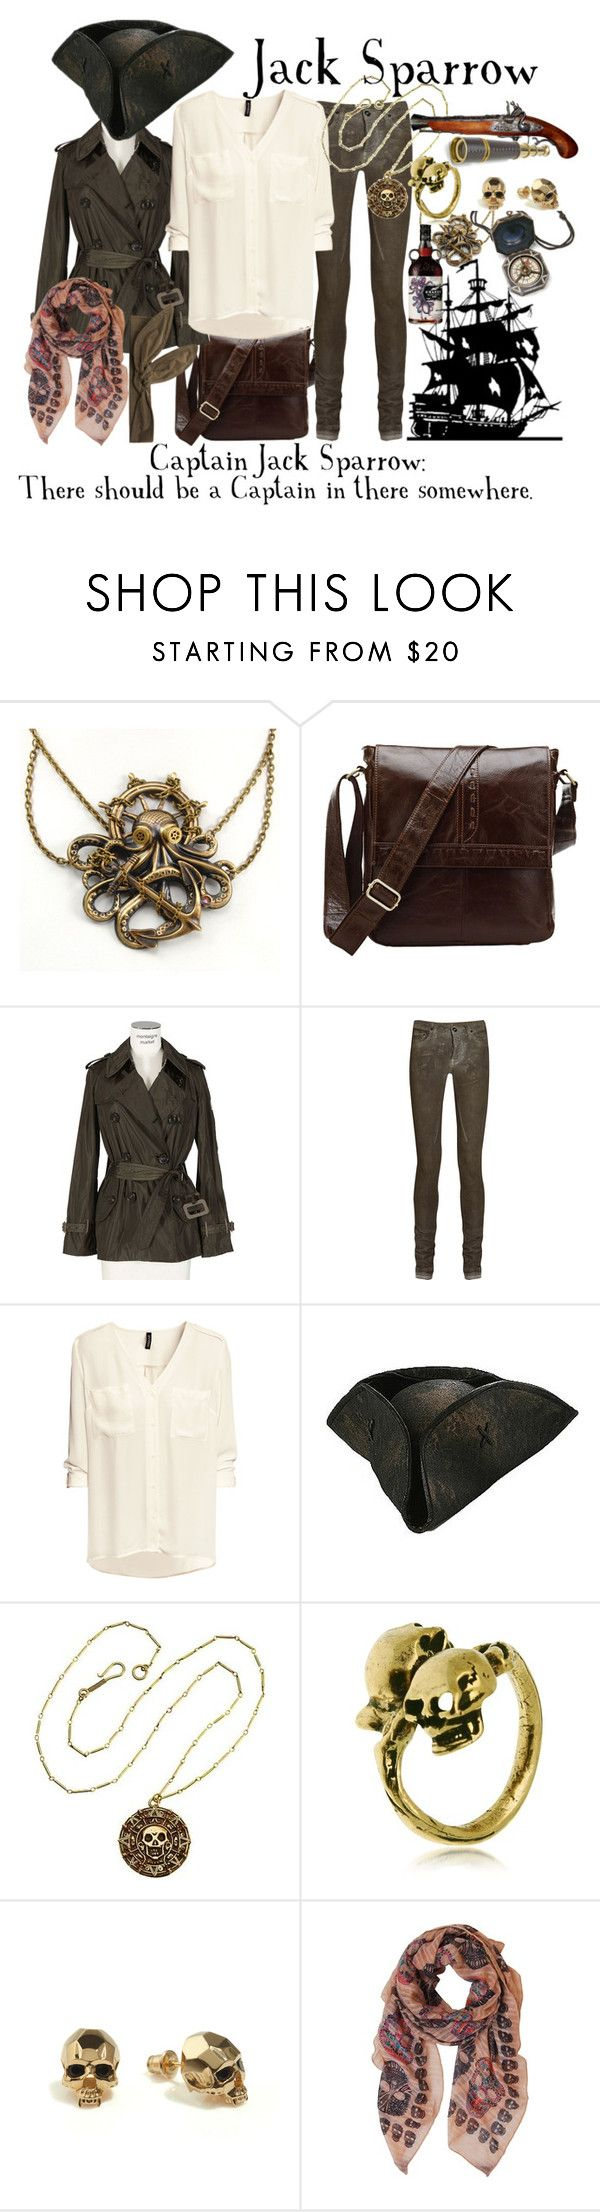 """""""To my future pirate self"""" by jonieisacat ❤ liked on Polyvore featuring Moncler By Sacai, DRKSHDW, H&M, Alcozer & J, Kasun, Humble Chic and Federica Moretti"""